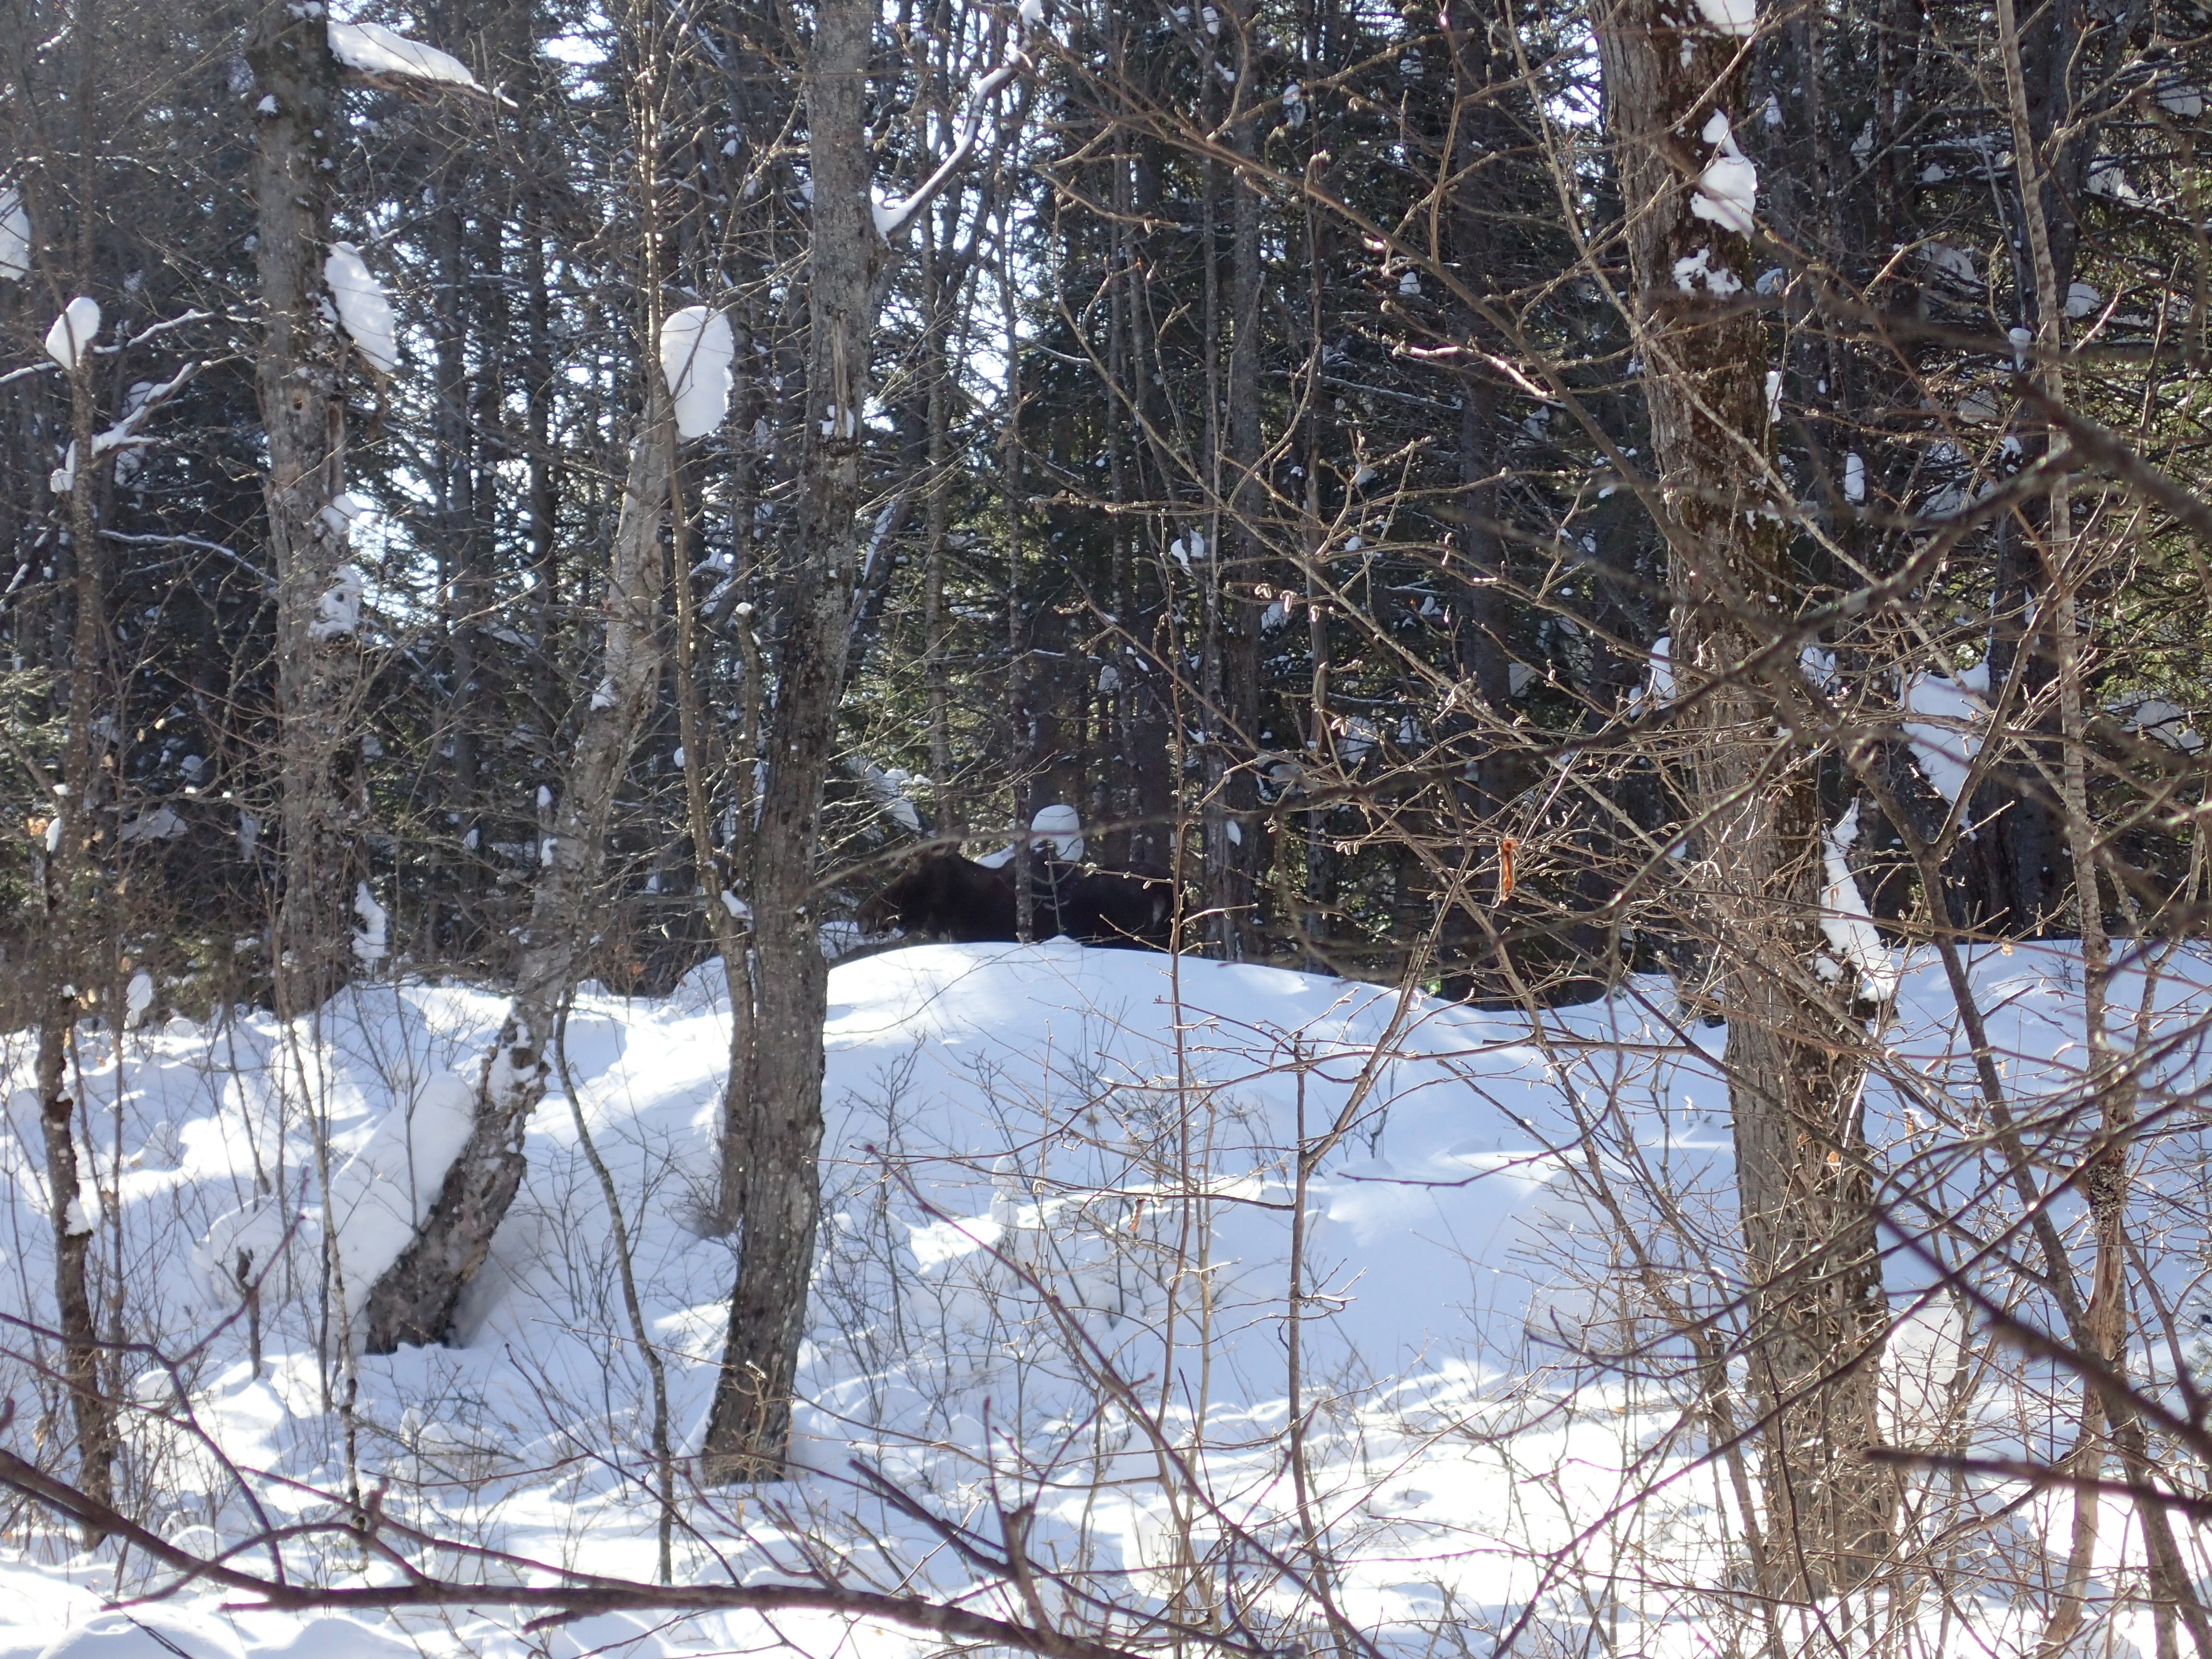 Moose spotted throught the trees